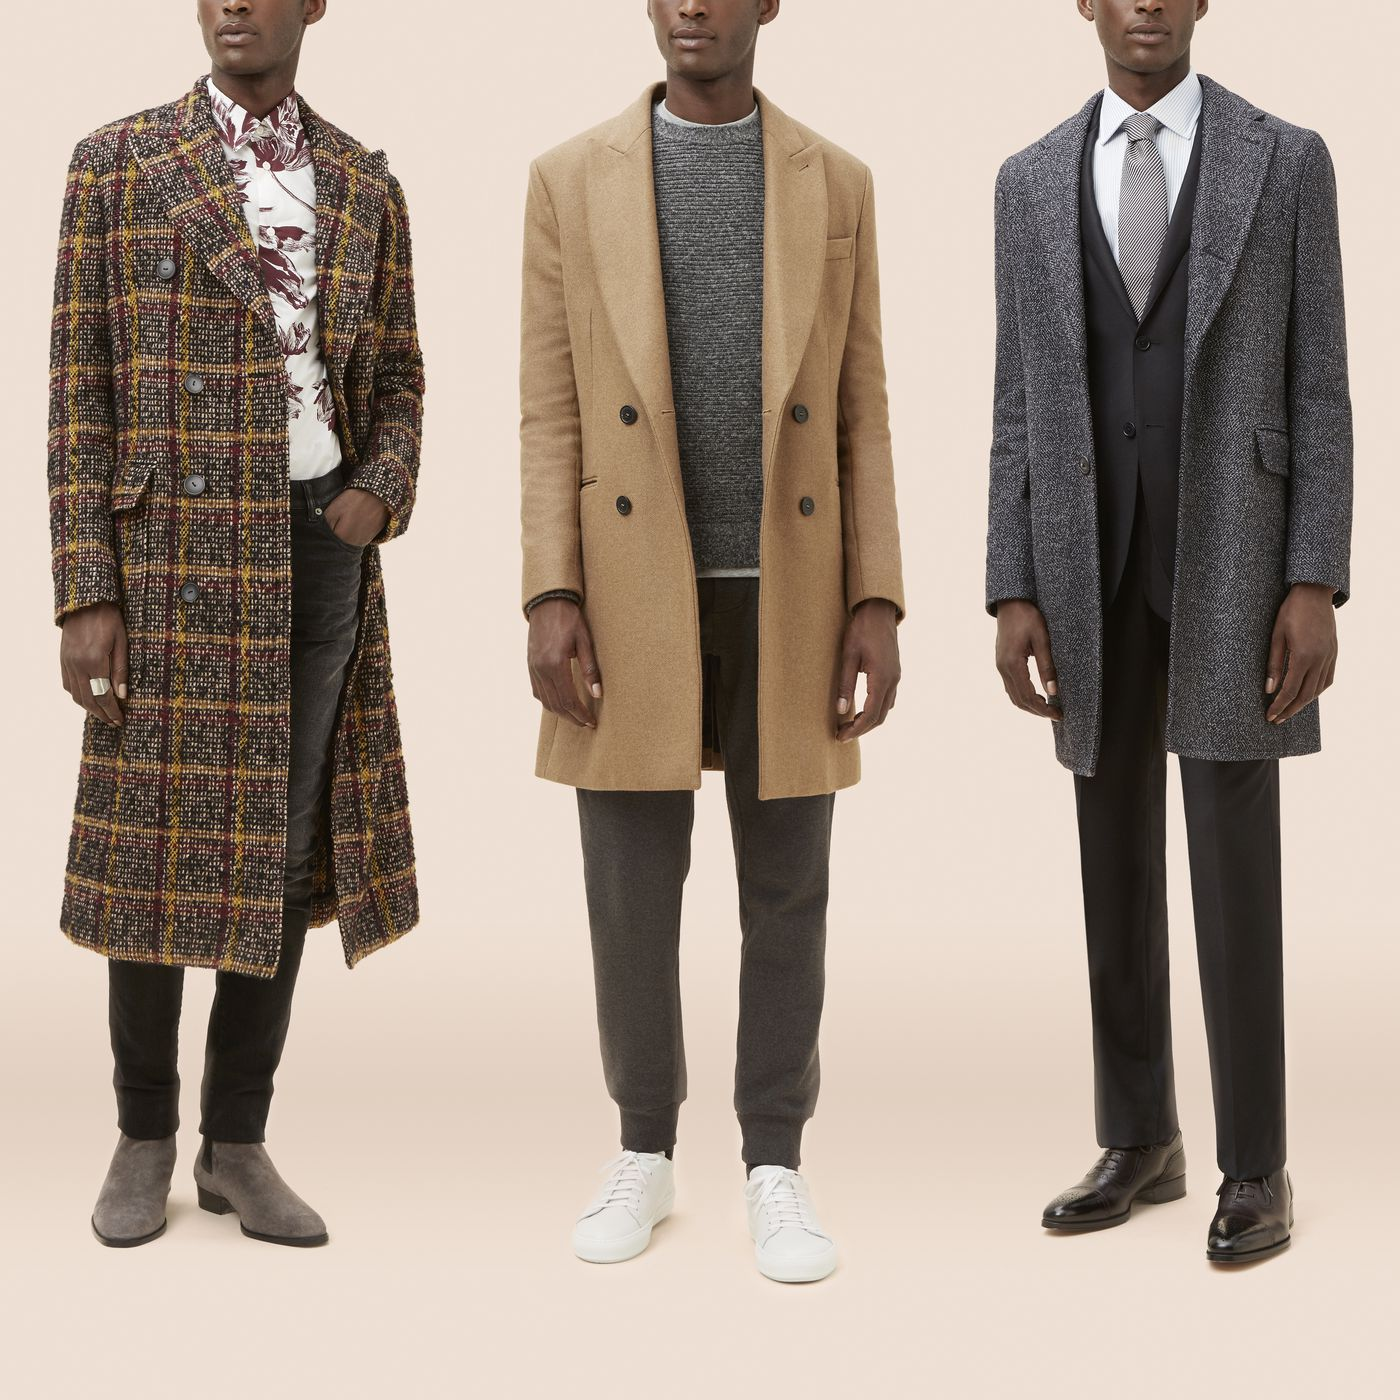 16049d2f776a9 The Most Essential Online Menswear Shops - Racked